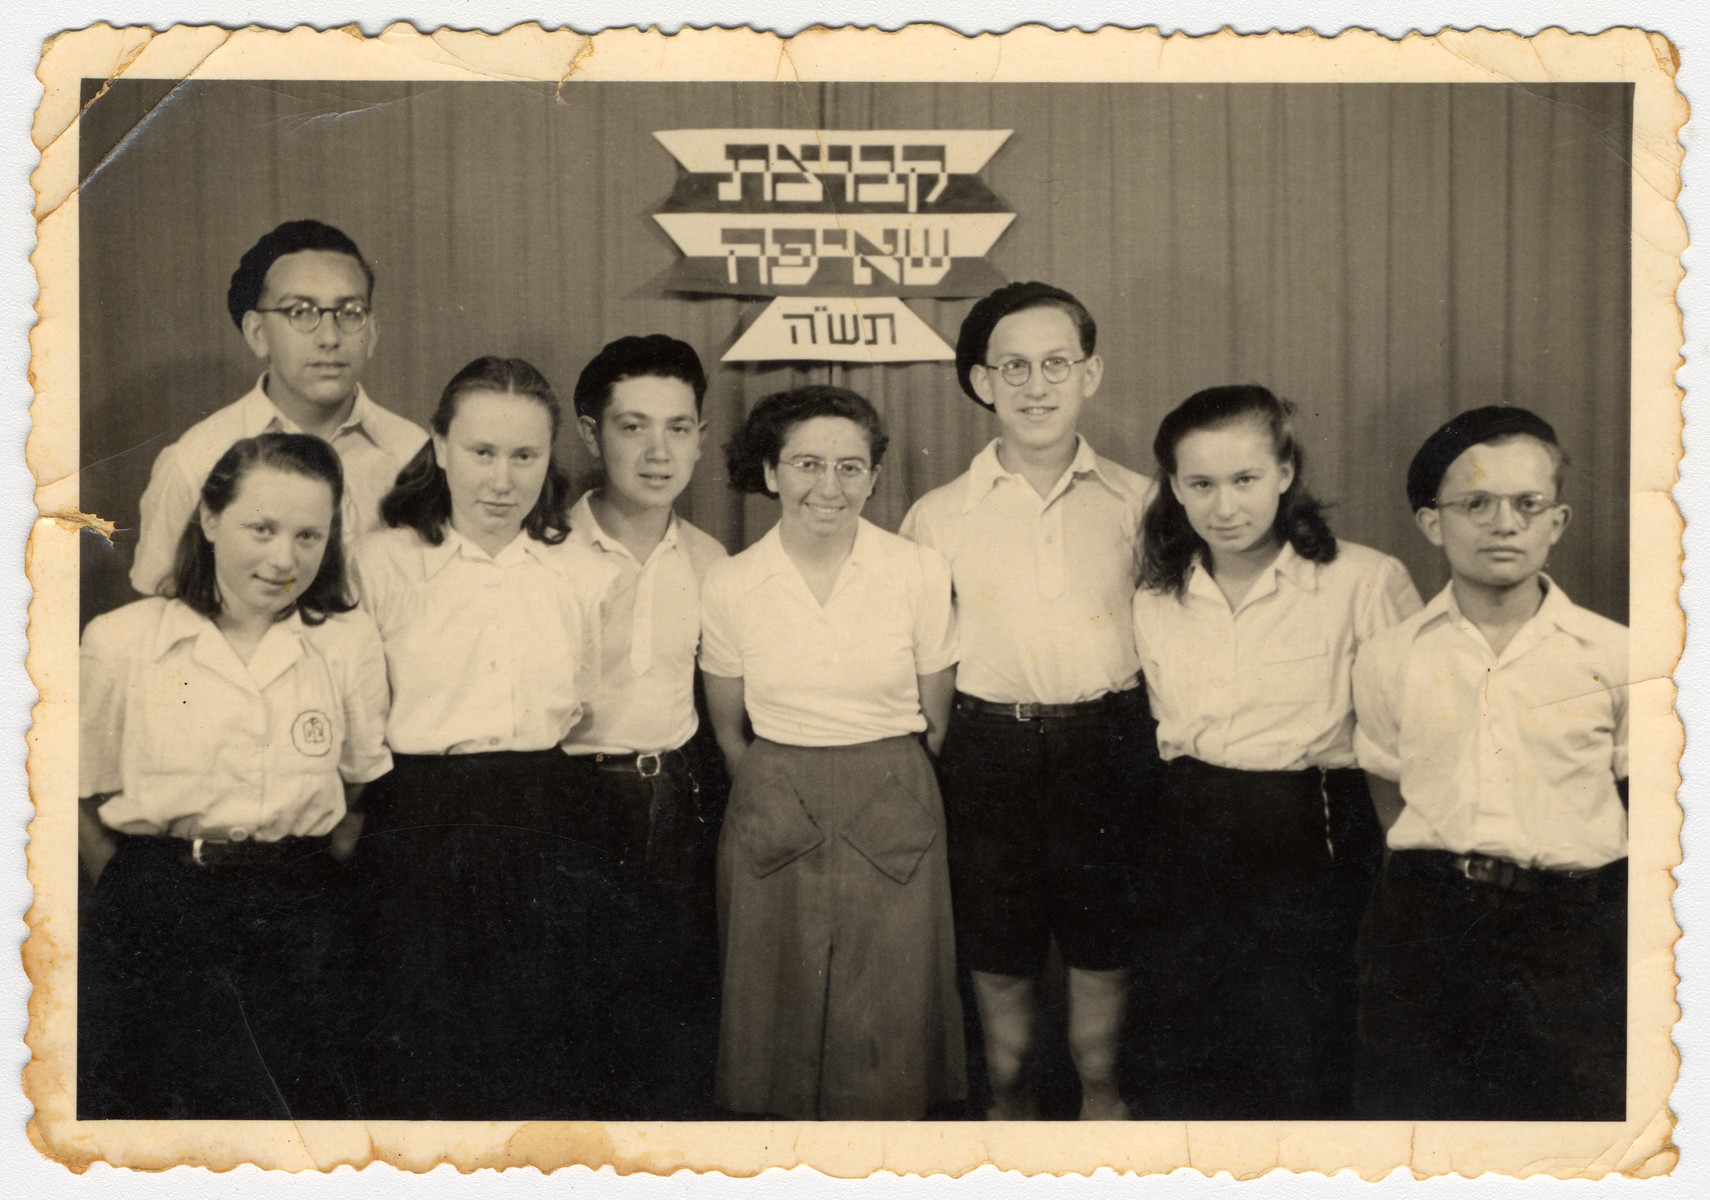 Group portait of members of the Brit Chalutzim Dati-im religious Zionist youth movement.